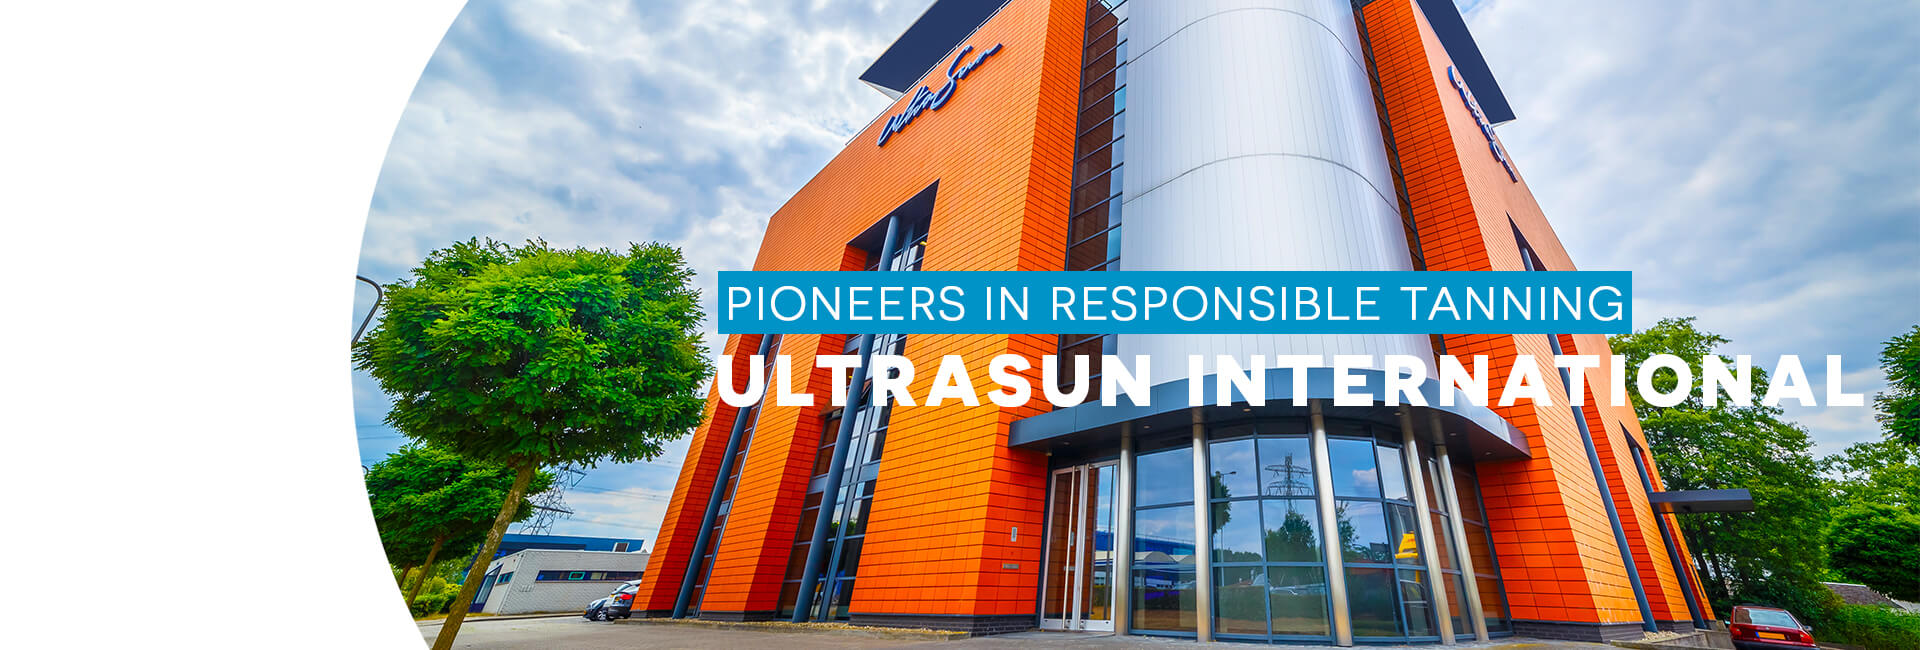 Ultrasun International headquarters